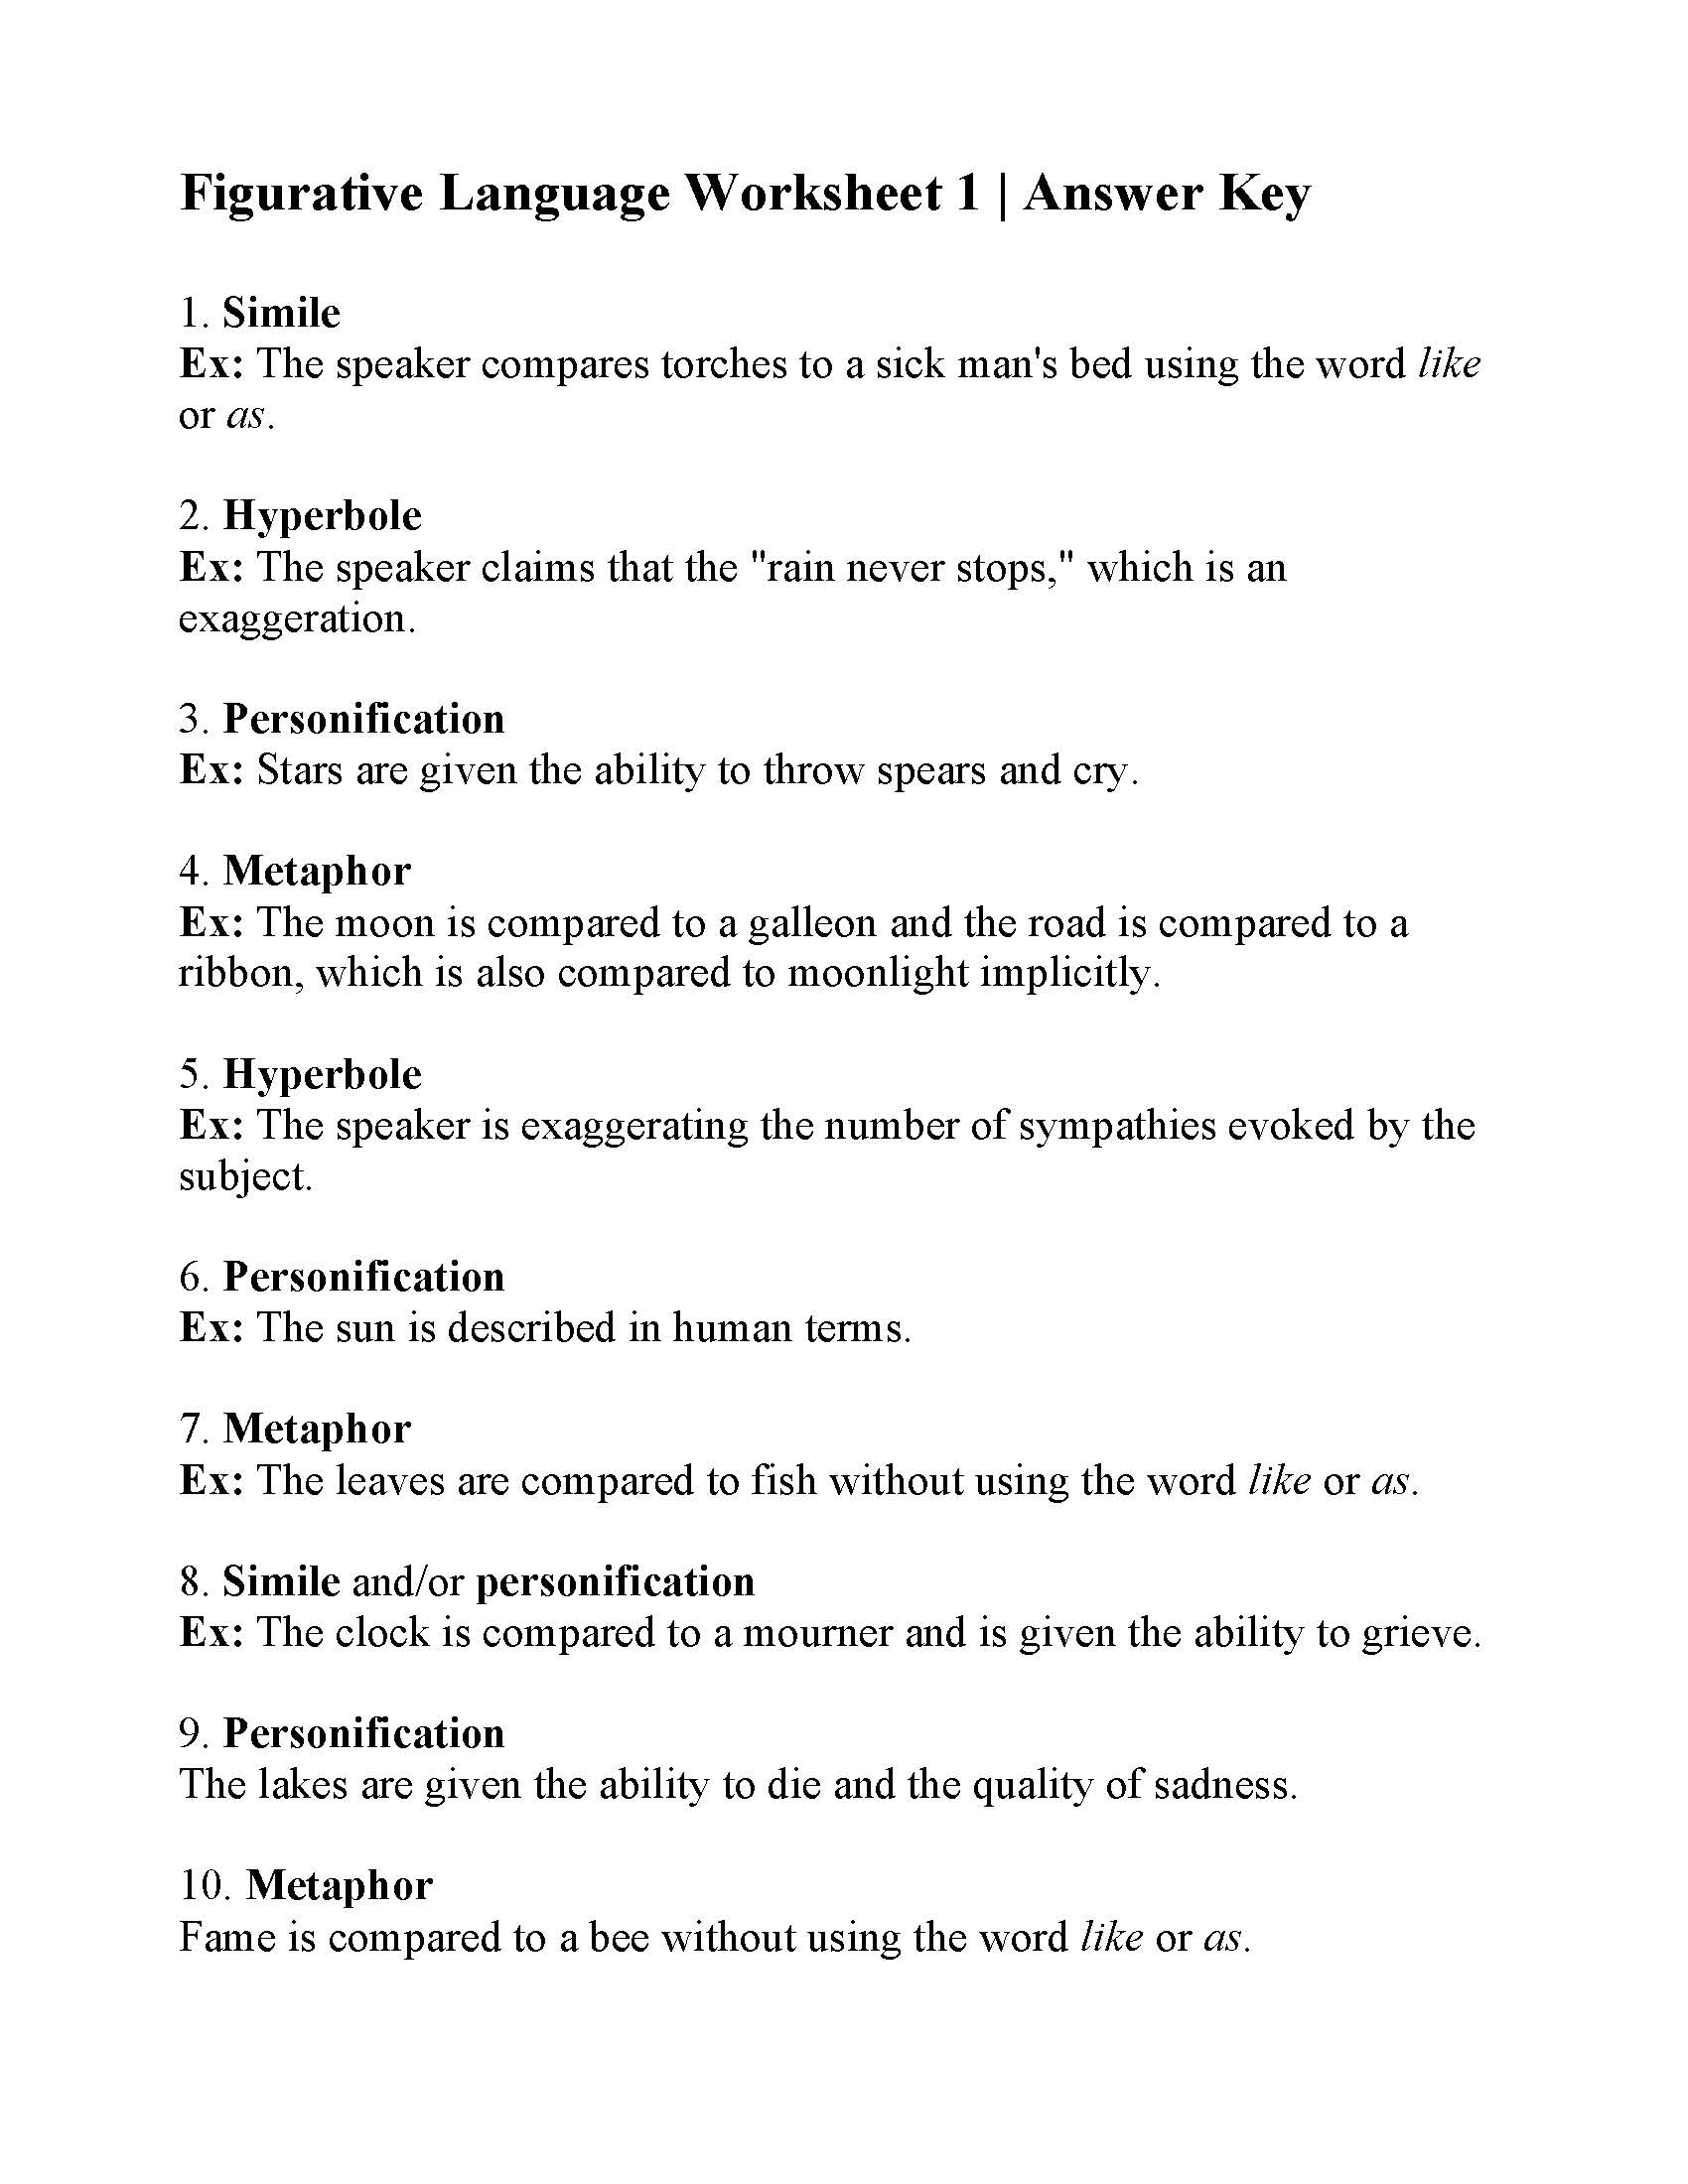 Worksheets Figurative Language Review Worksheet figurative language worksheet 1 answers 1